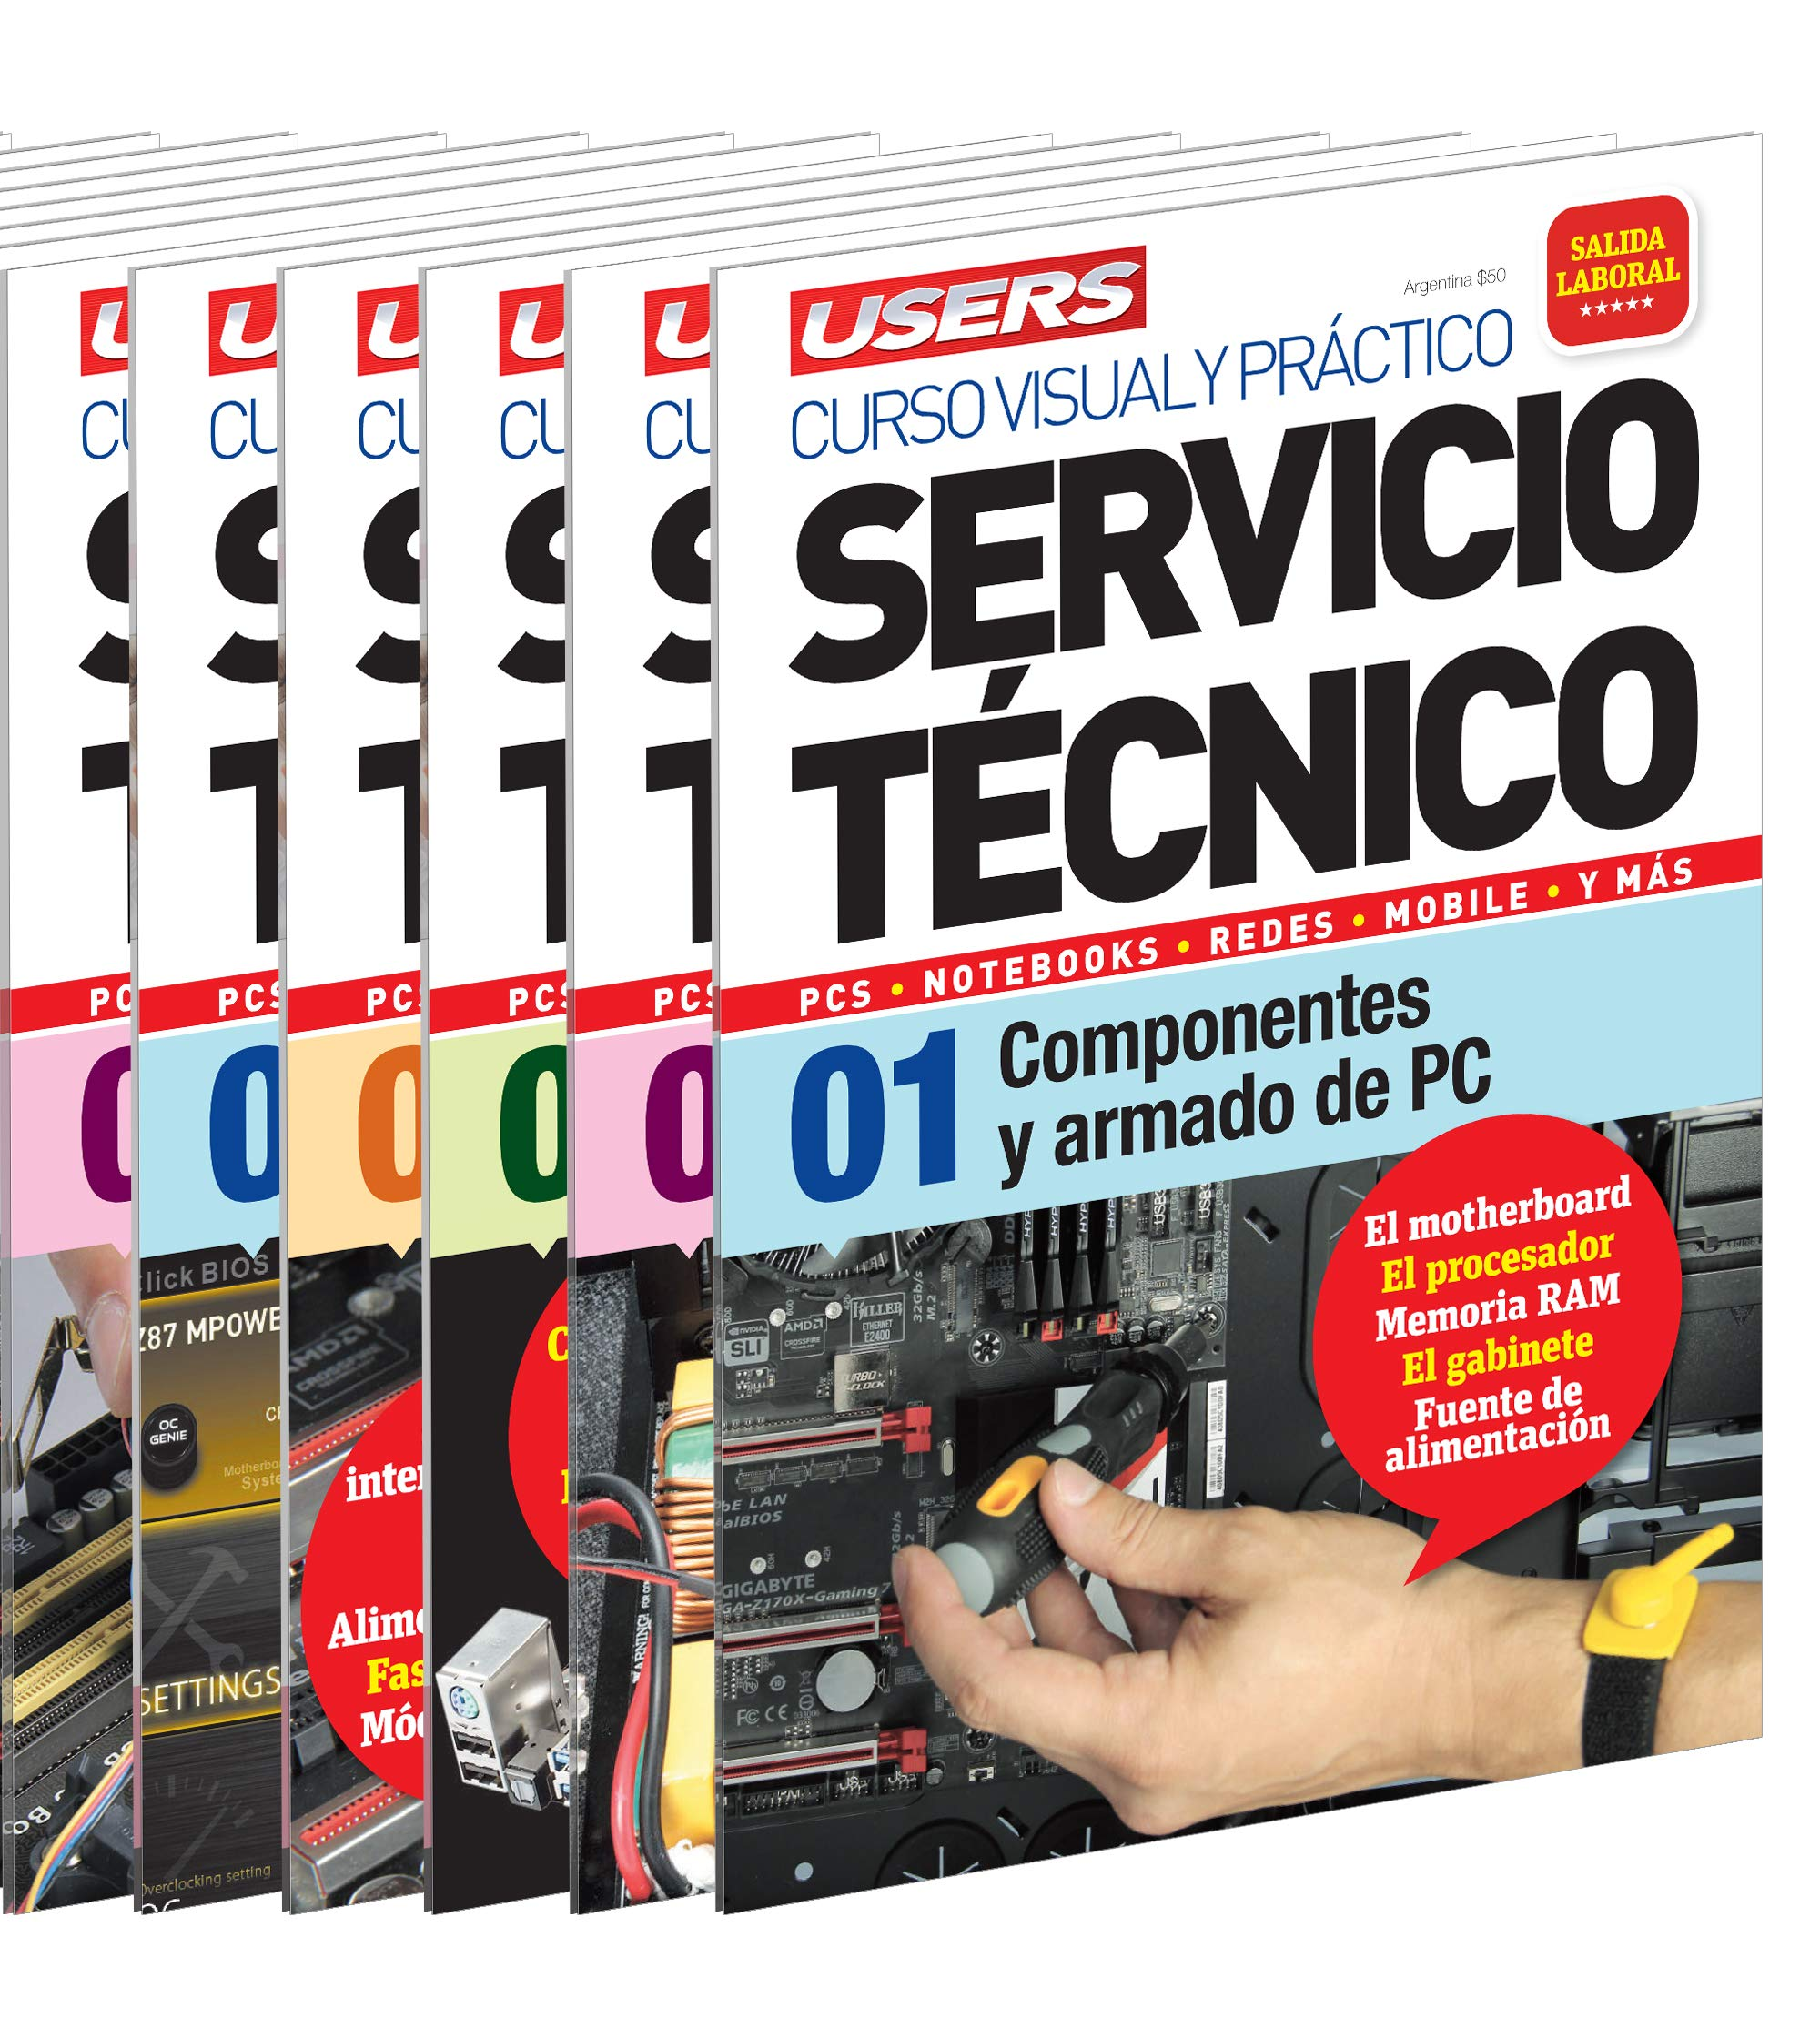 Servicio Técnico - PCs, Notebooks, Redes, Mobile y màs (Spanish ...